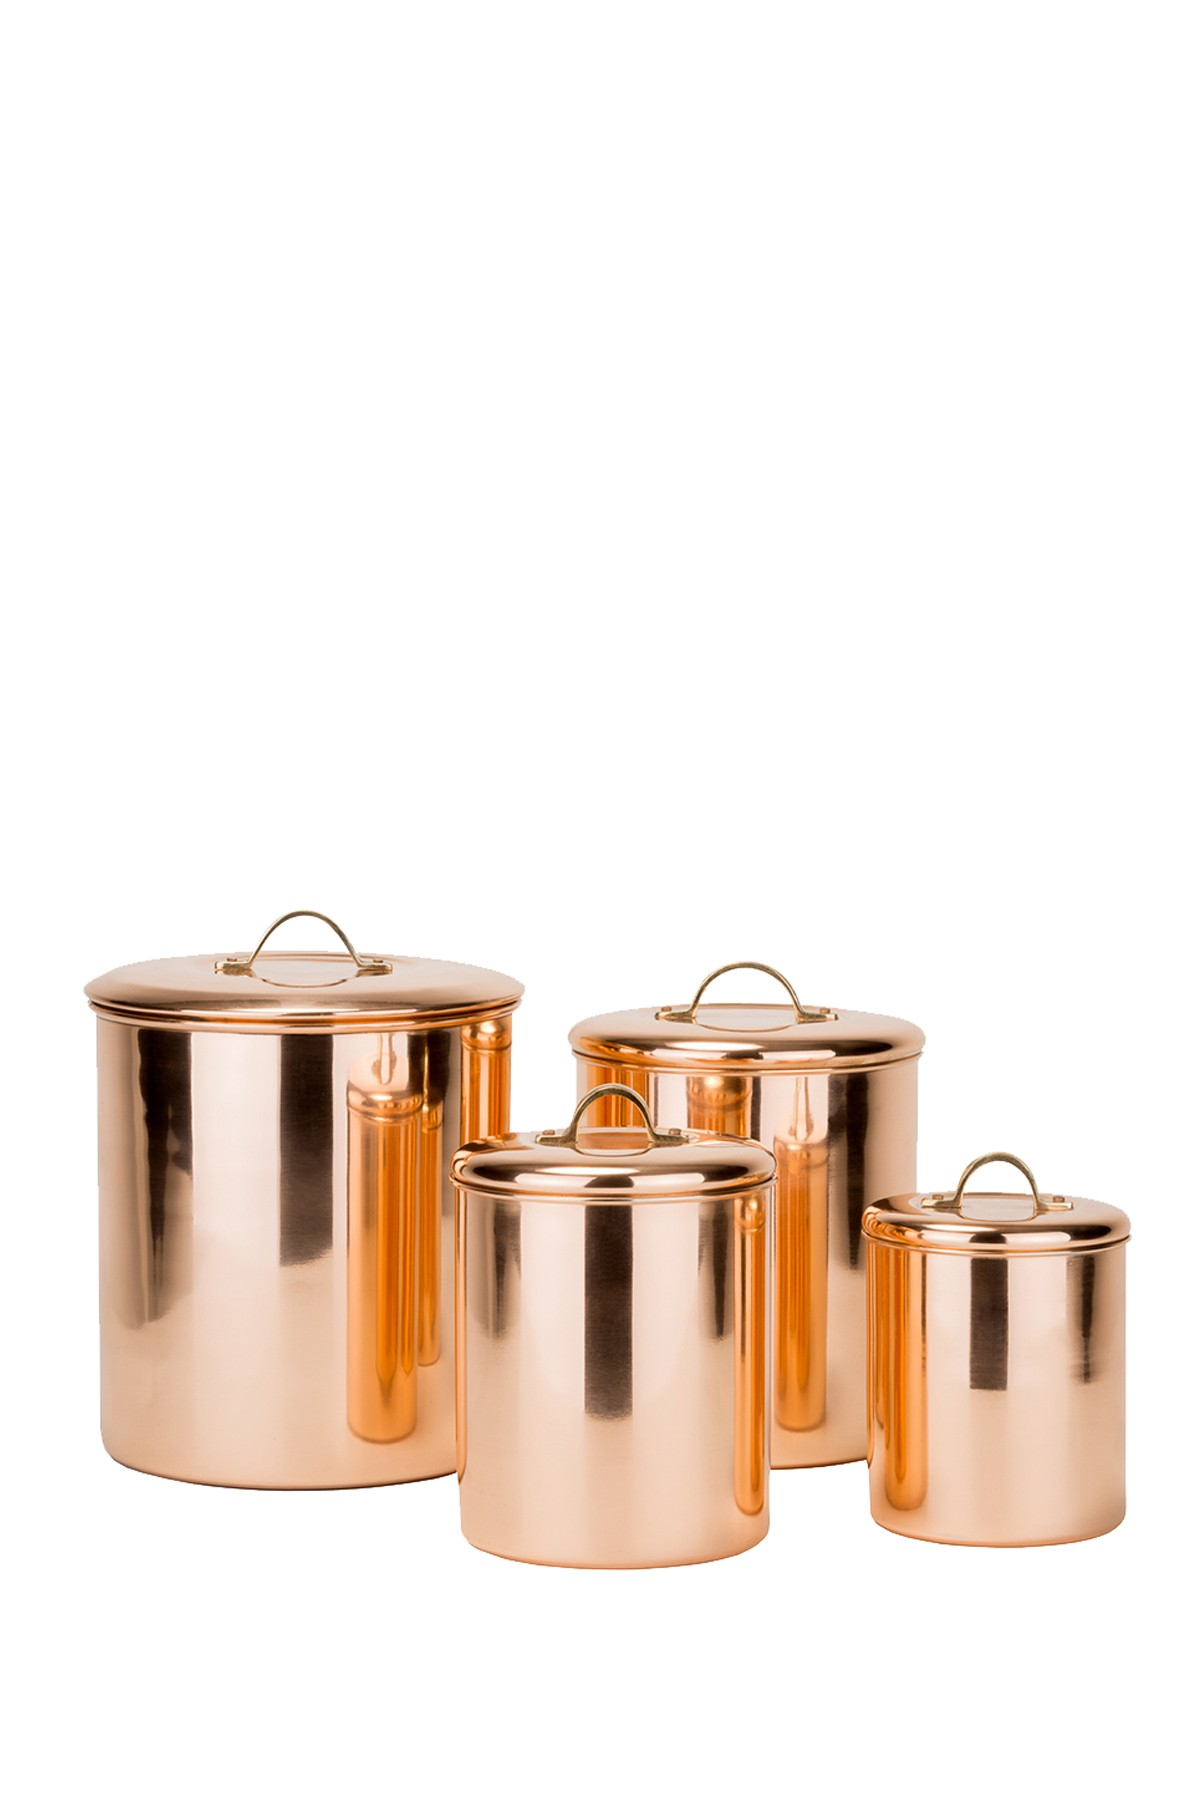 Odi Housewares Copper Canister 4 Piece Set